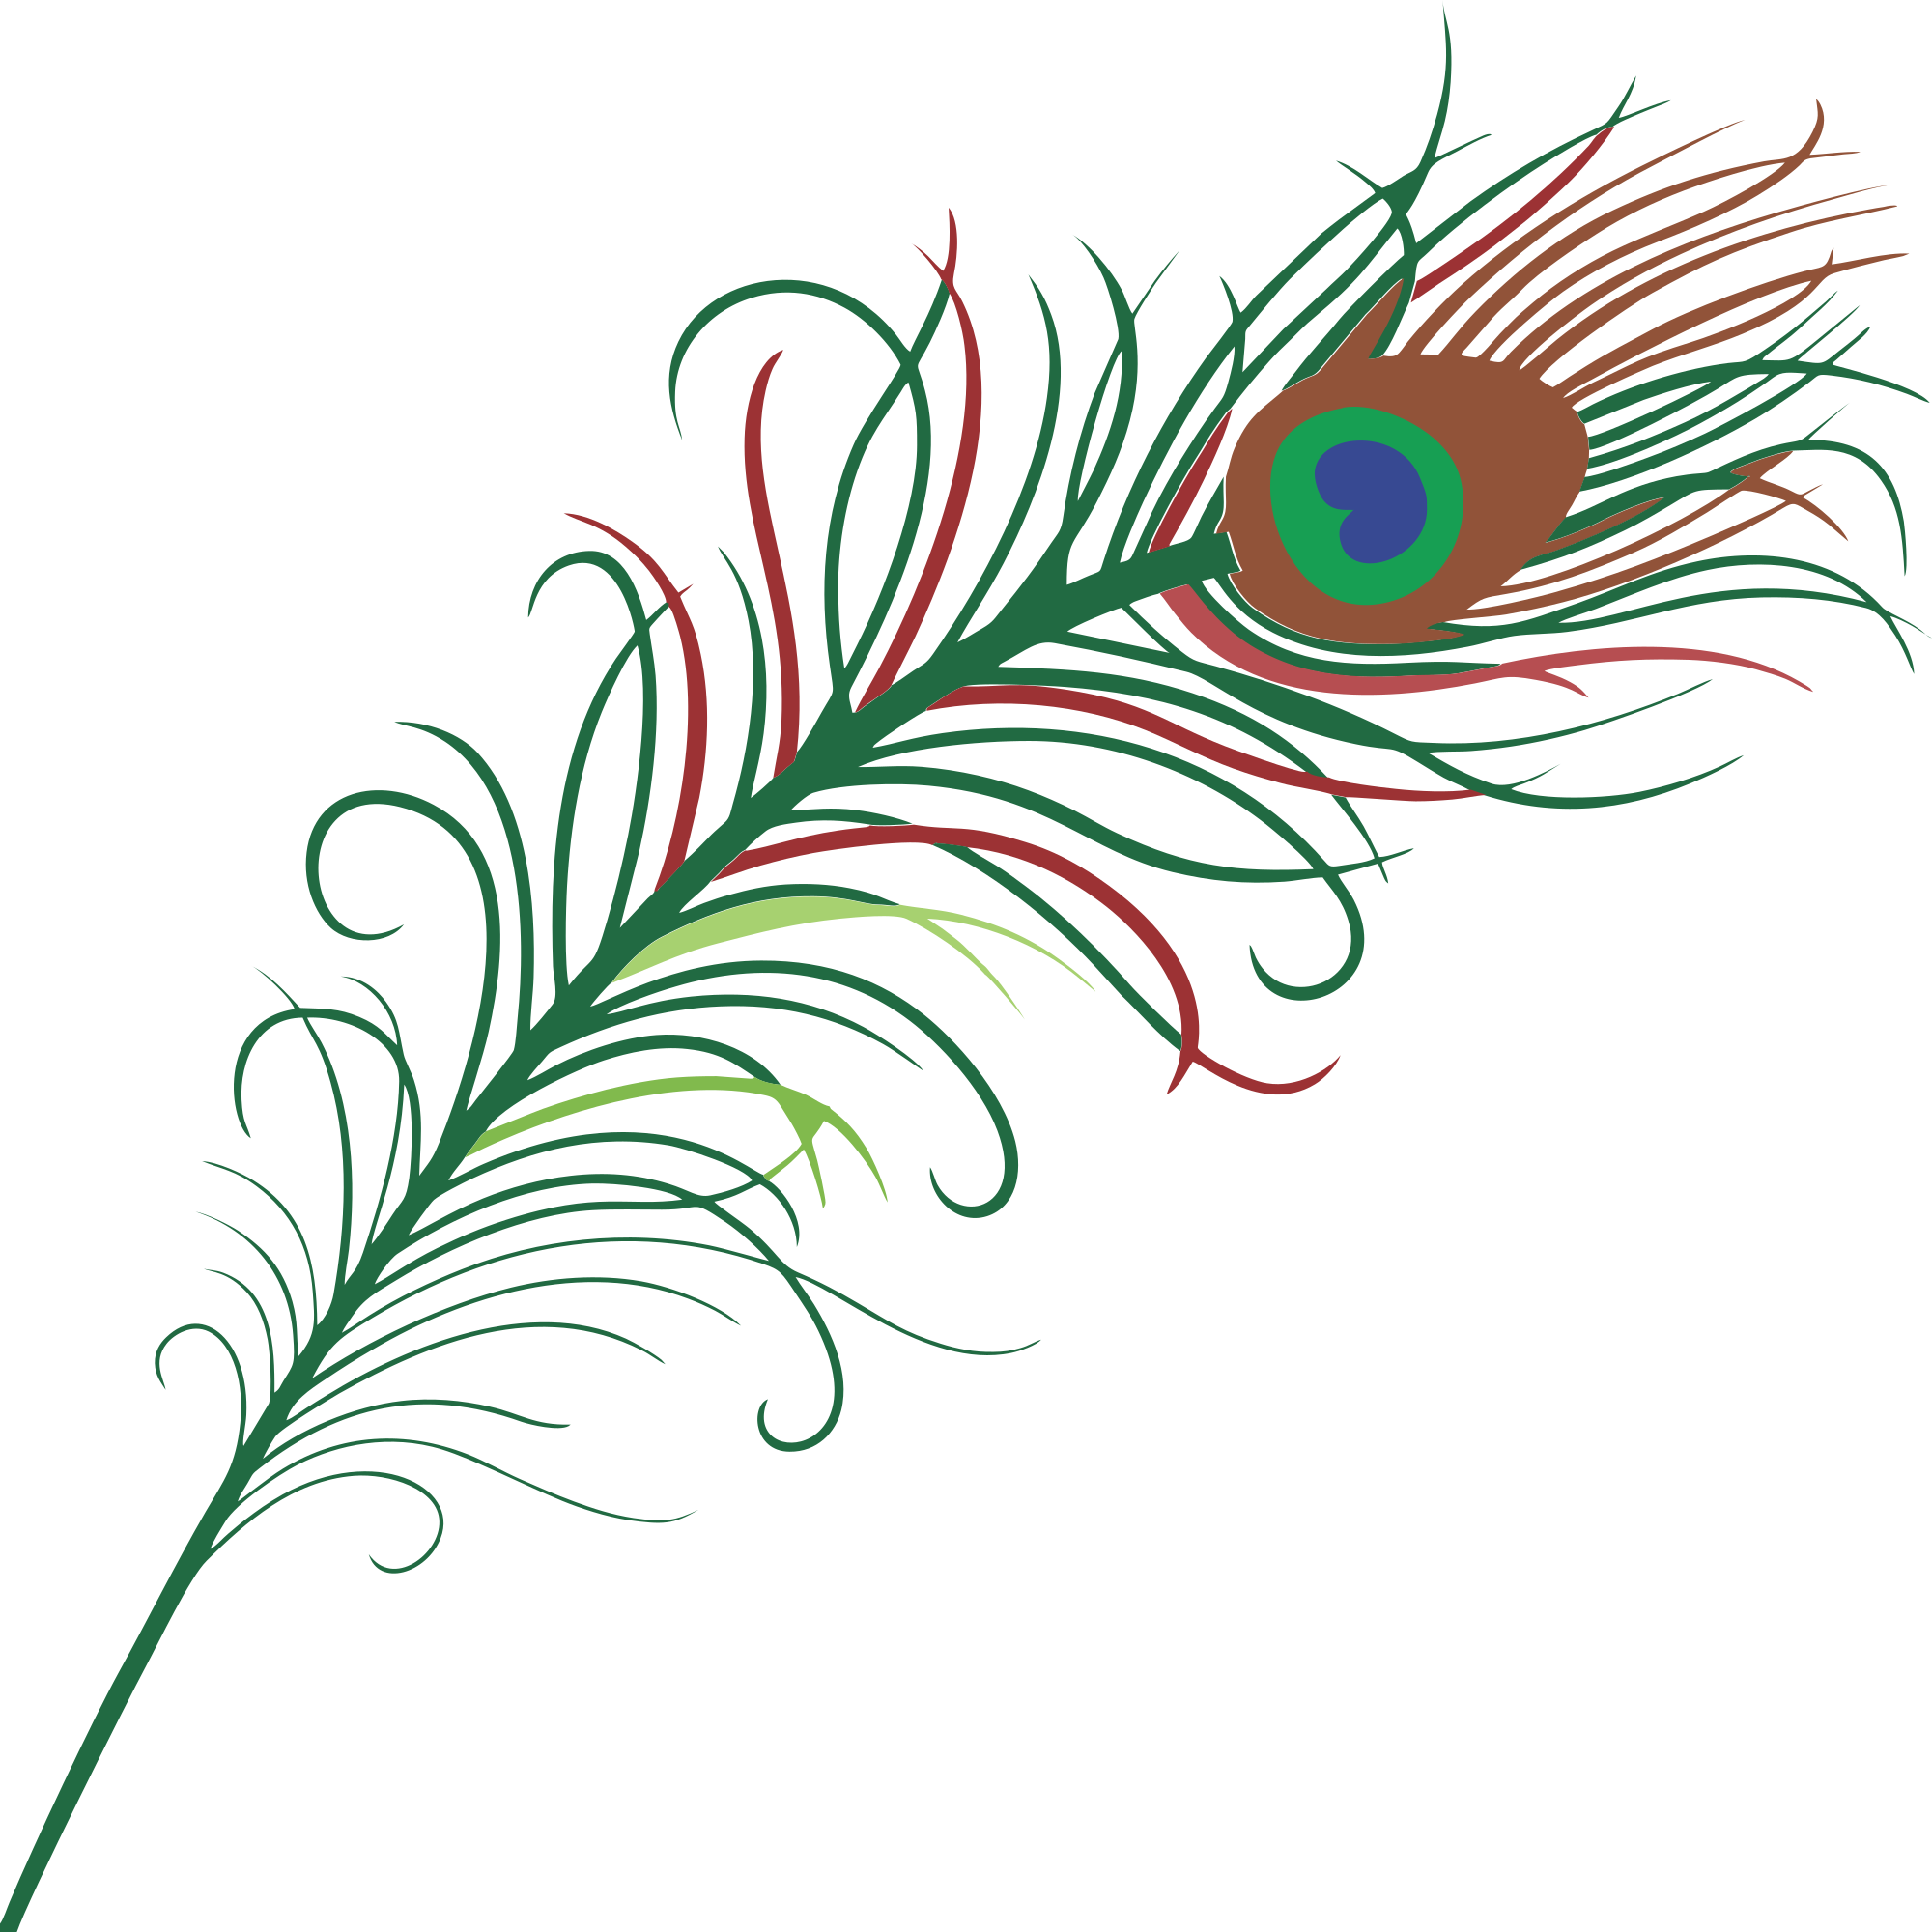 image royalty free Peacock feather clipart black and white. Free vector image clipartix